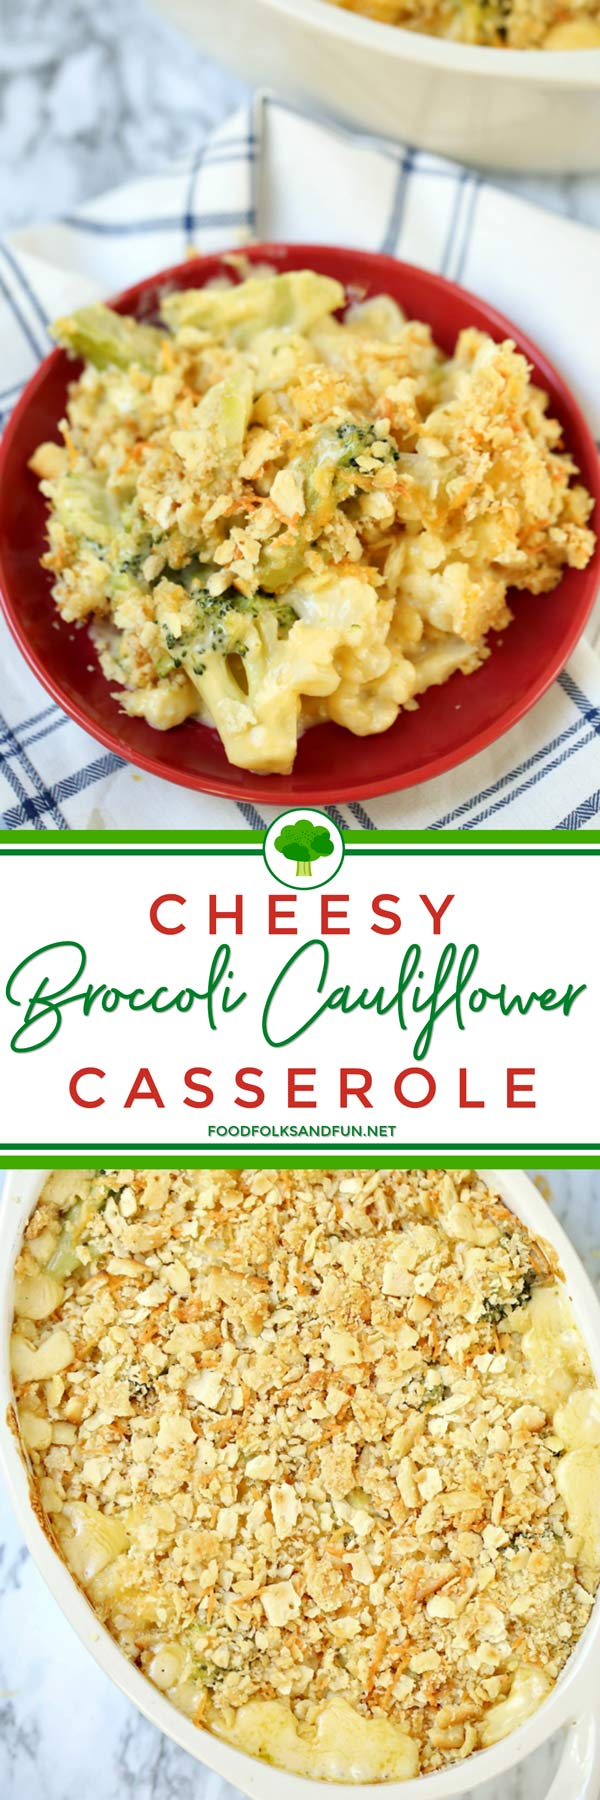 Picture collage of Best-Ever Cheesy Broccoli Cauliflower Casserole recipe for Pinterest.